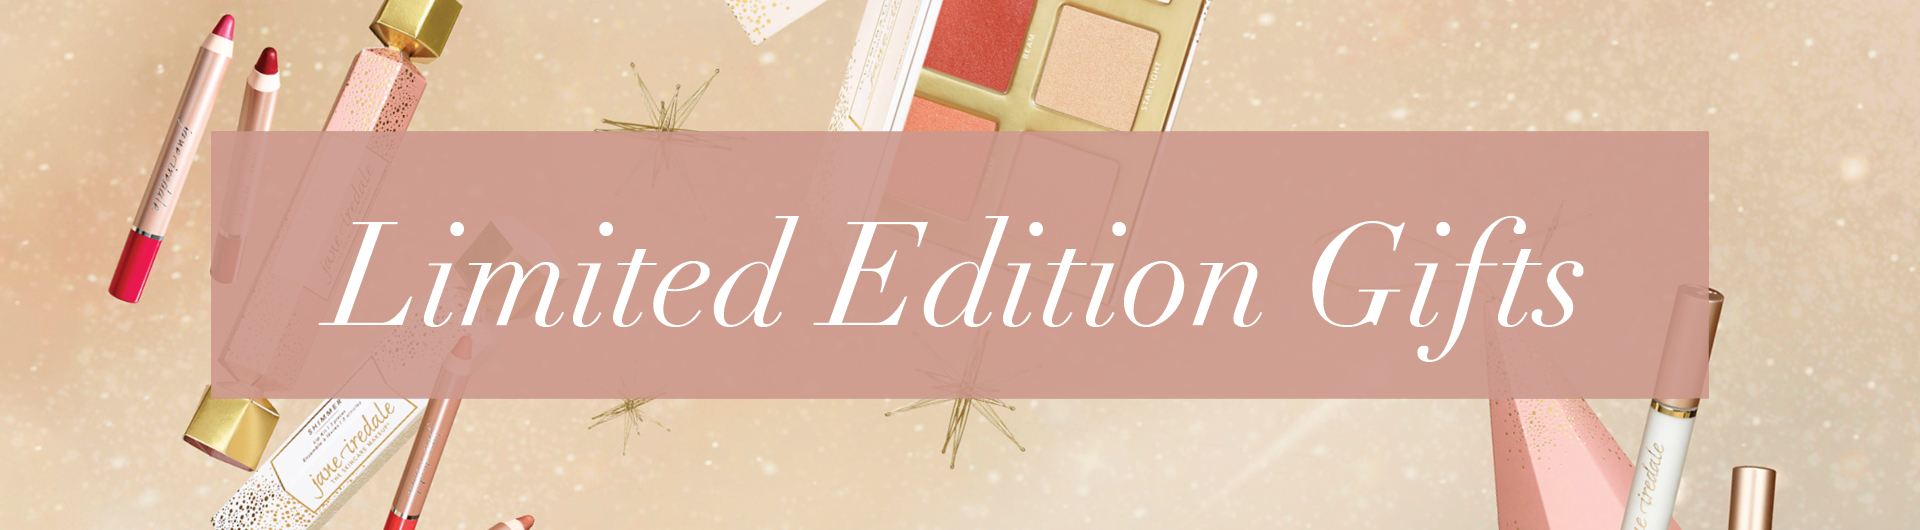 Limited Edition Gifts Banner